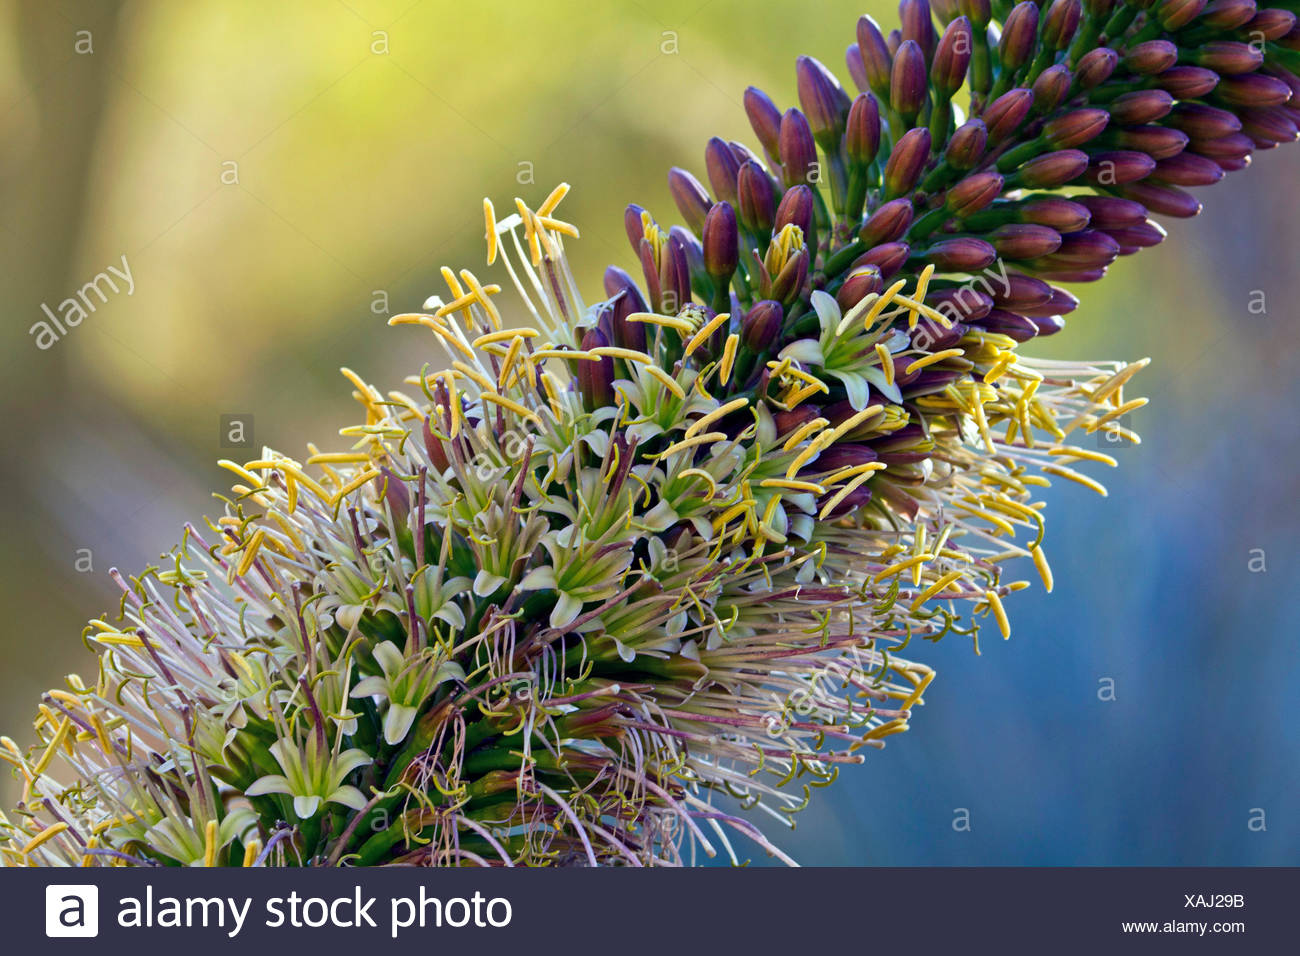 Agave (Agave spec.), inflorescence, detail - Stock Image